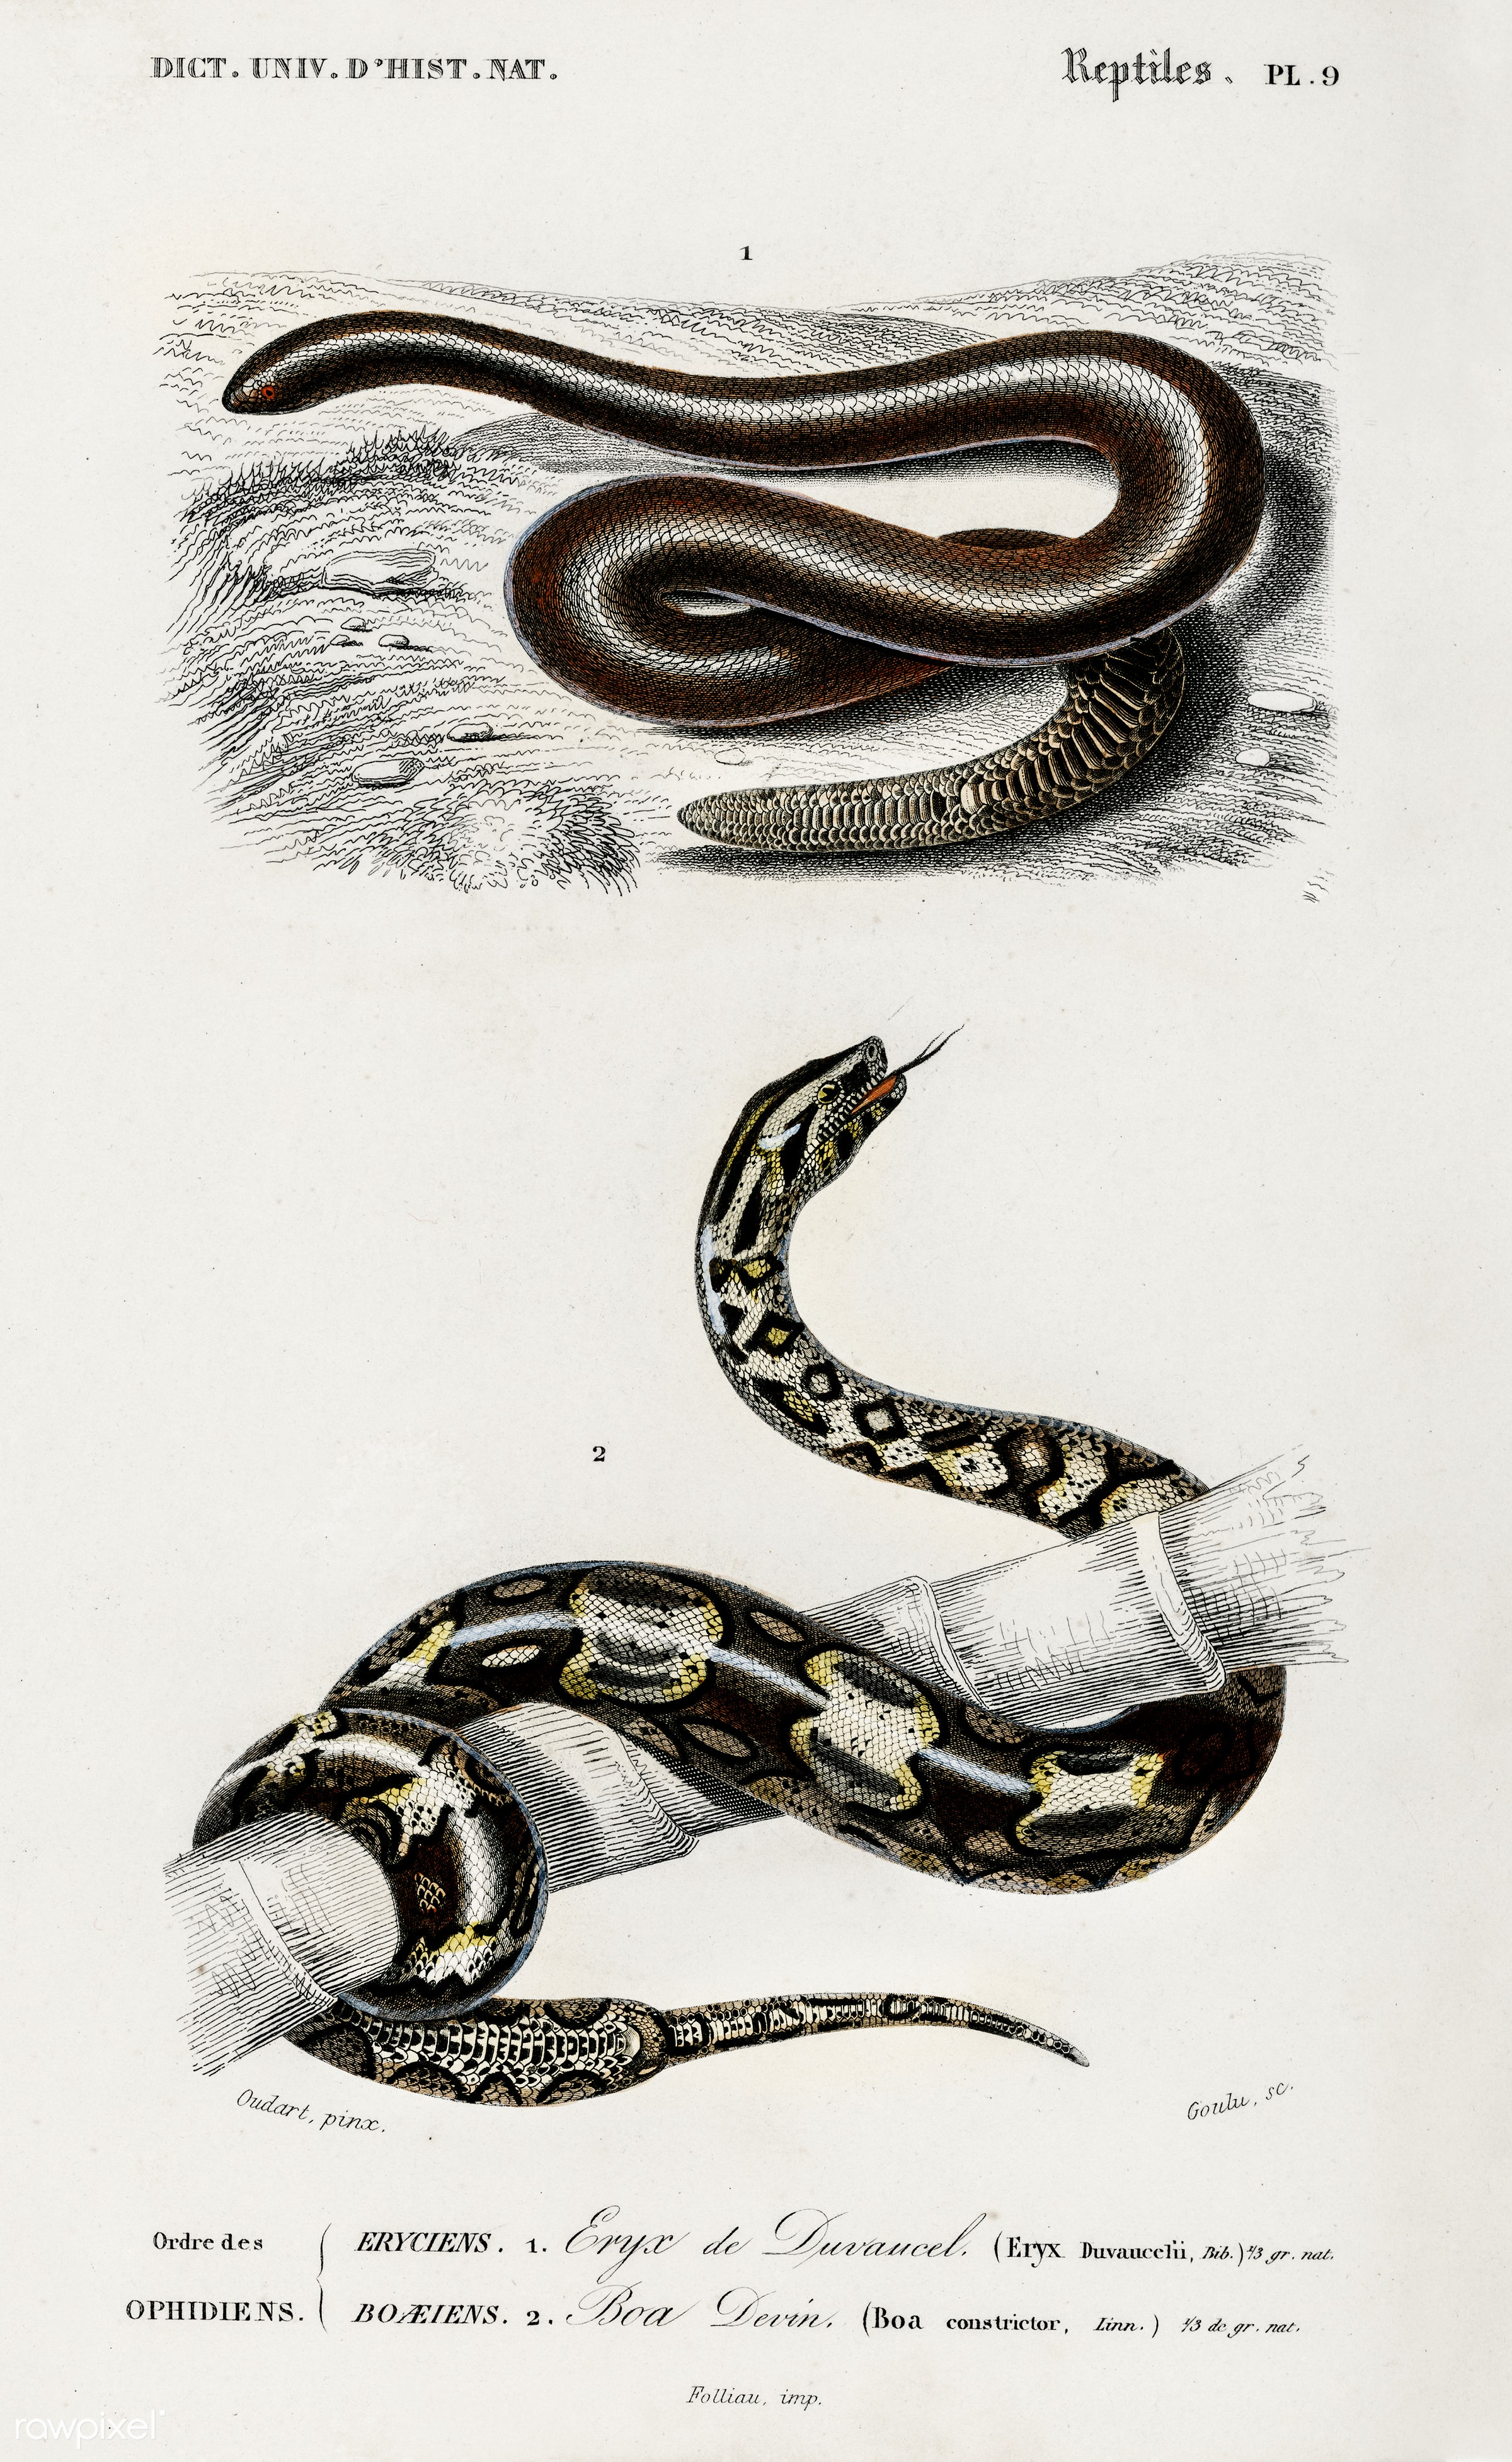 Eryx and the Red-tailed boa illustrated by Charles Dessalines D' Orbigny (1806-1876). Digitally enhanced from our own...